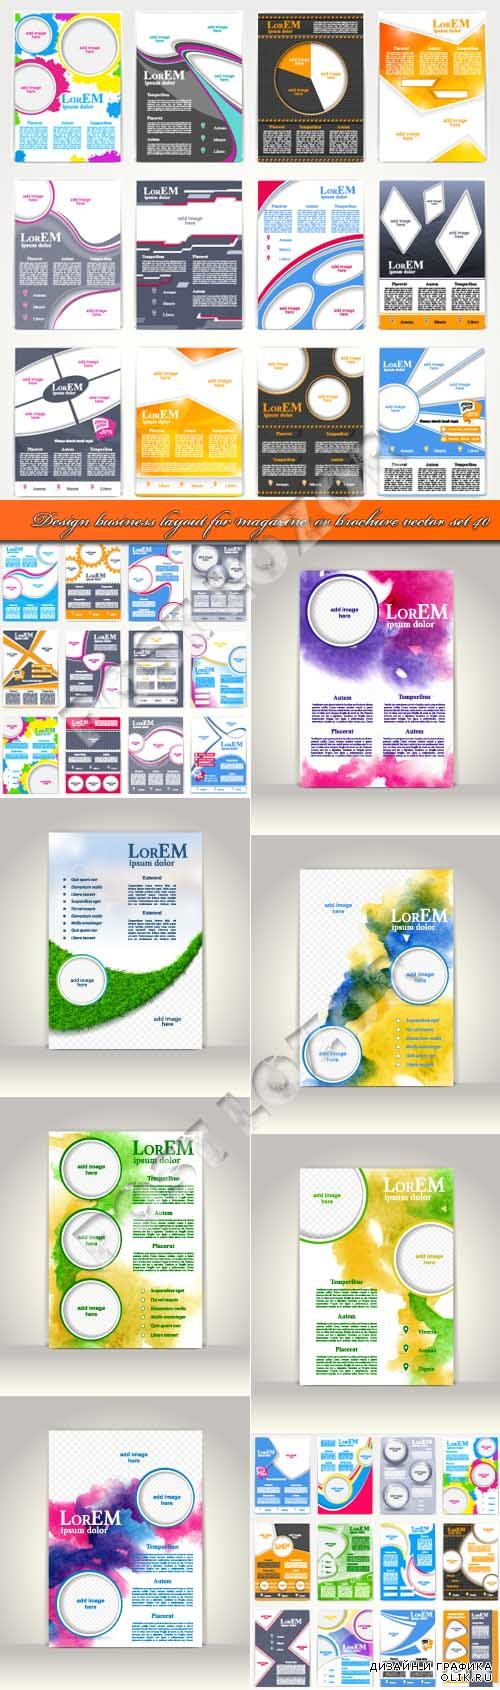 Design business layout for magazine or brochure vector set 40